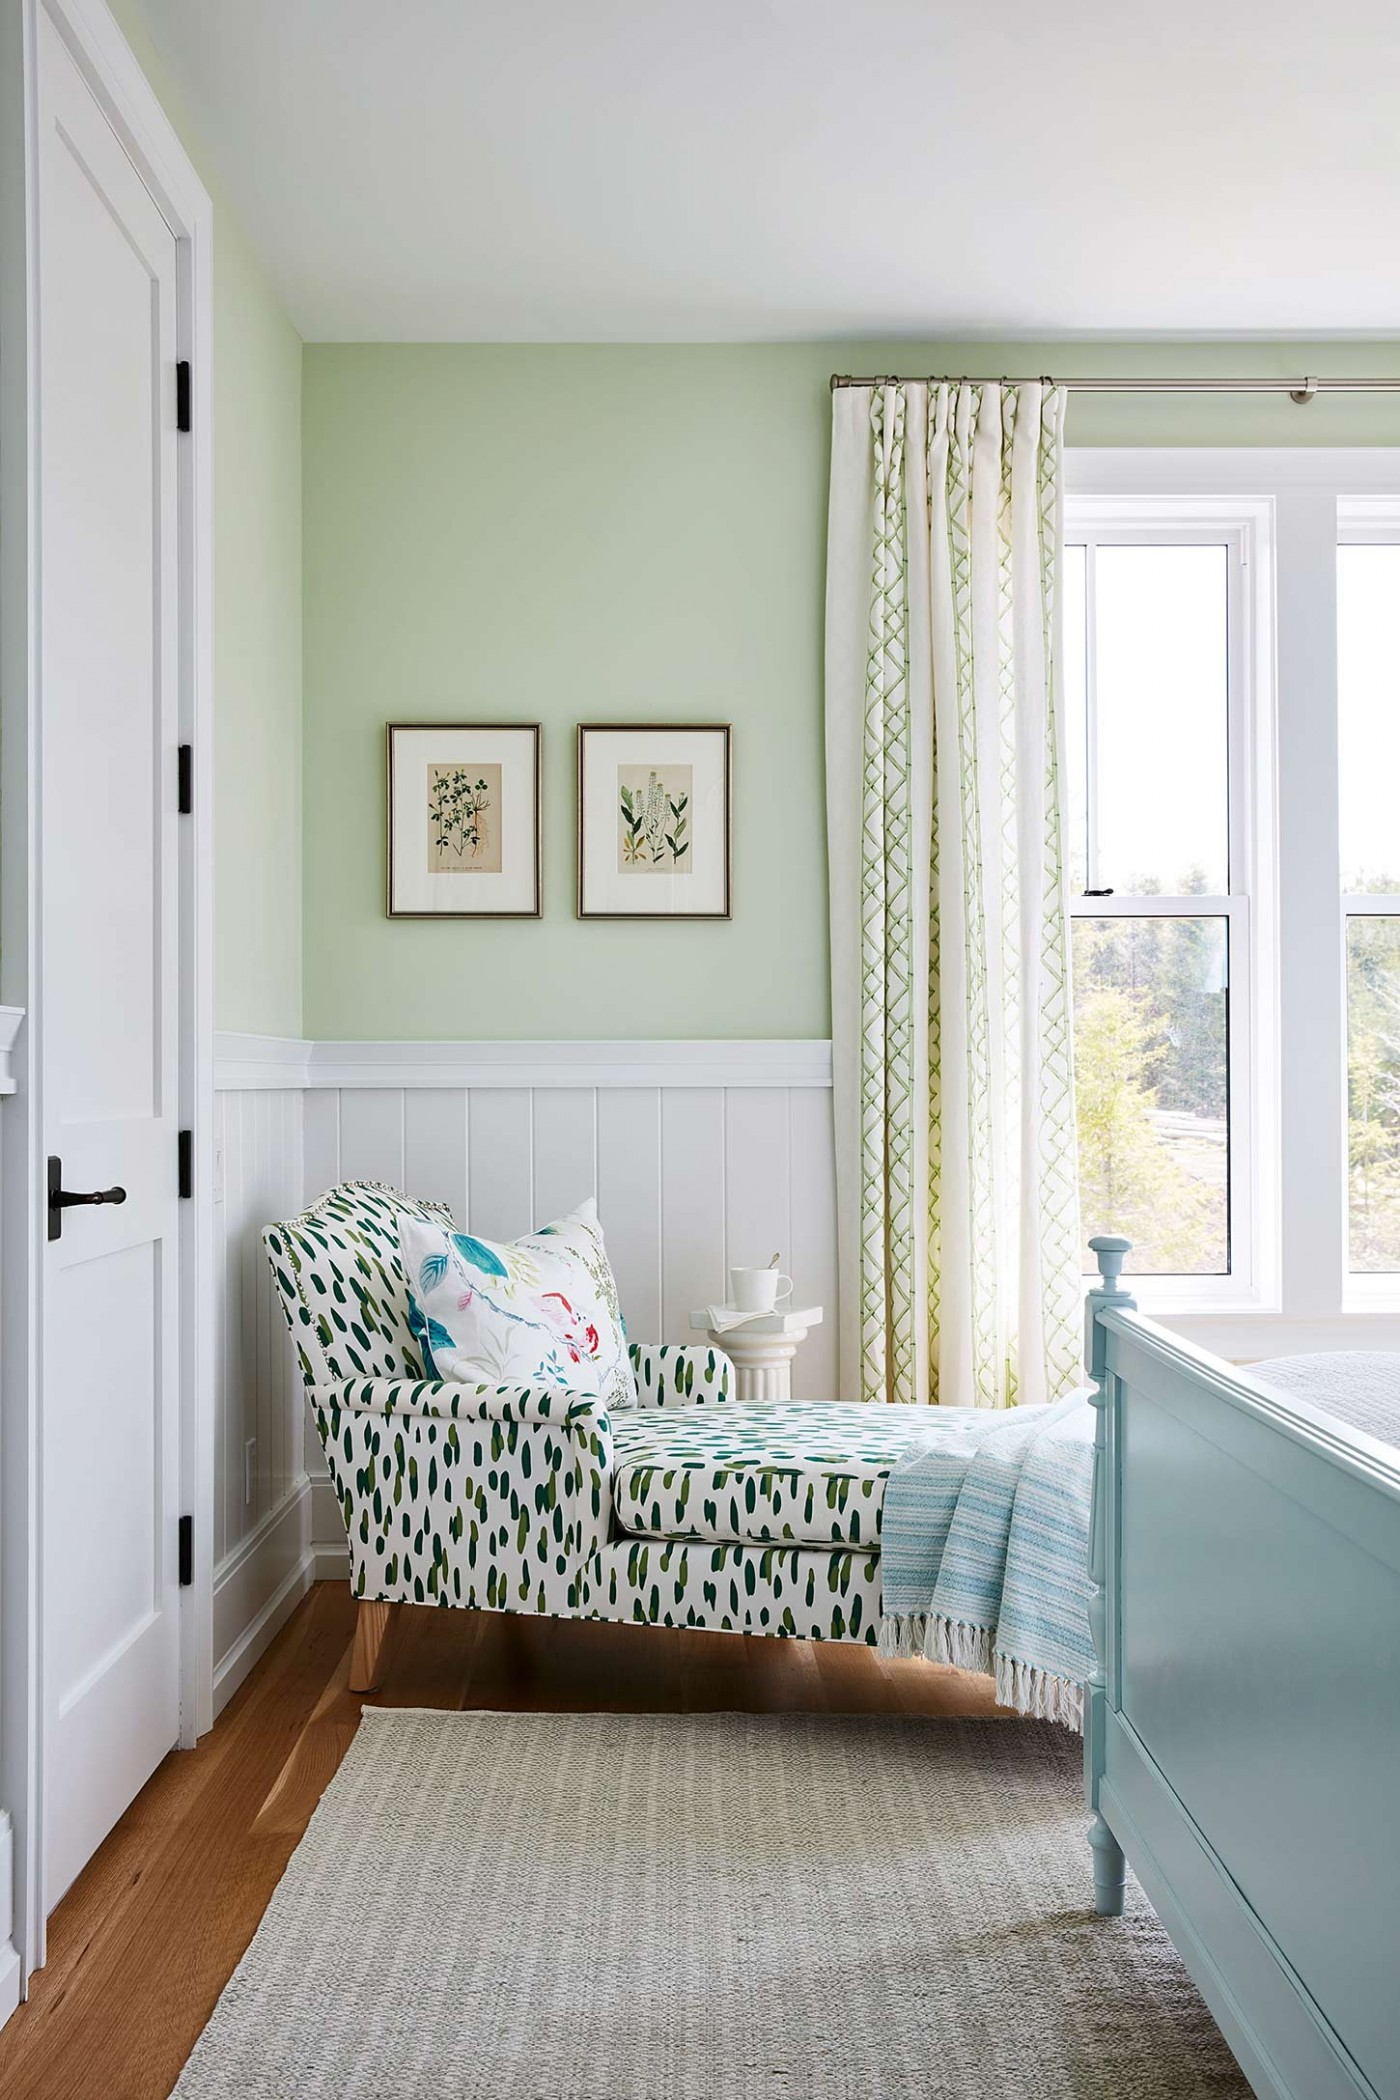 Lounge Chair with whimsical green and blue print in Sarah Richardson designed mint green bedroom